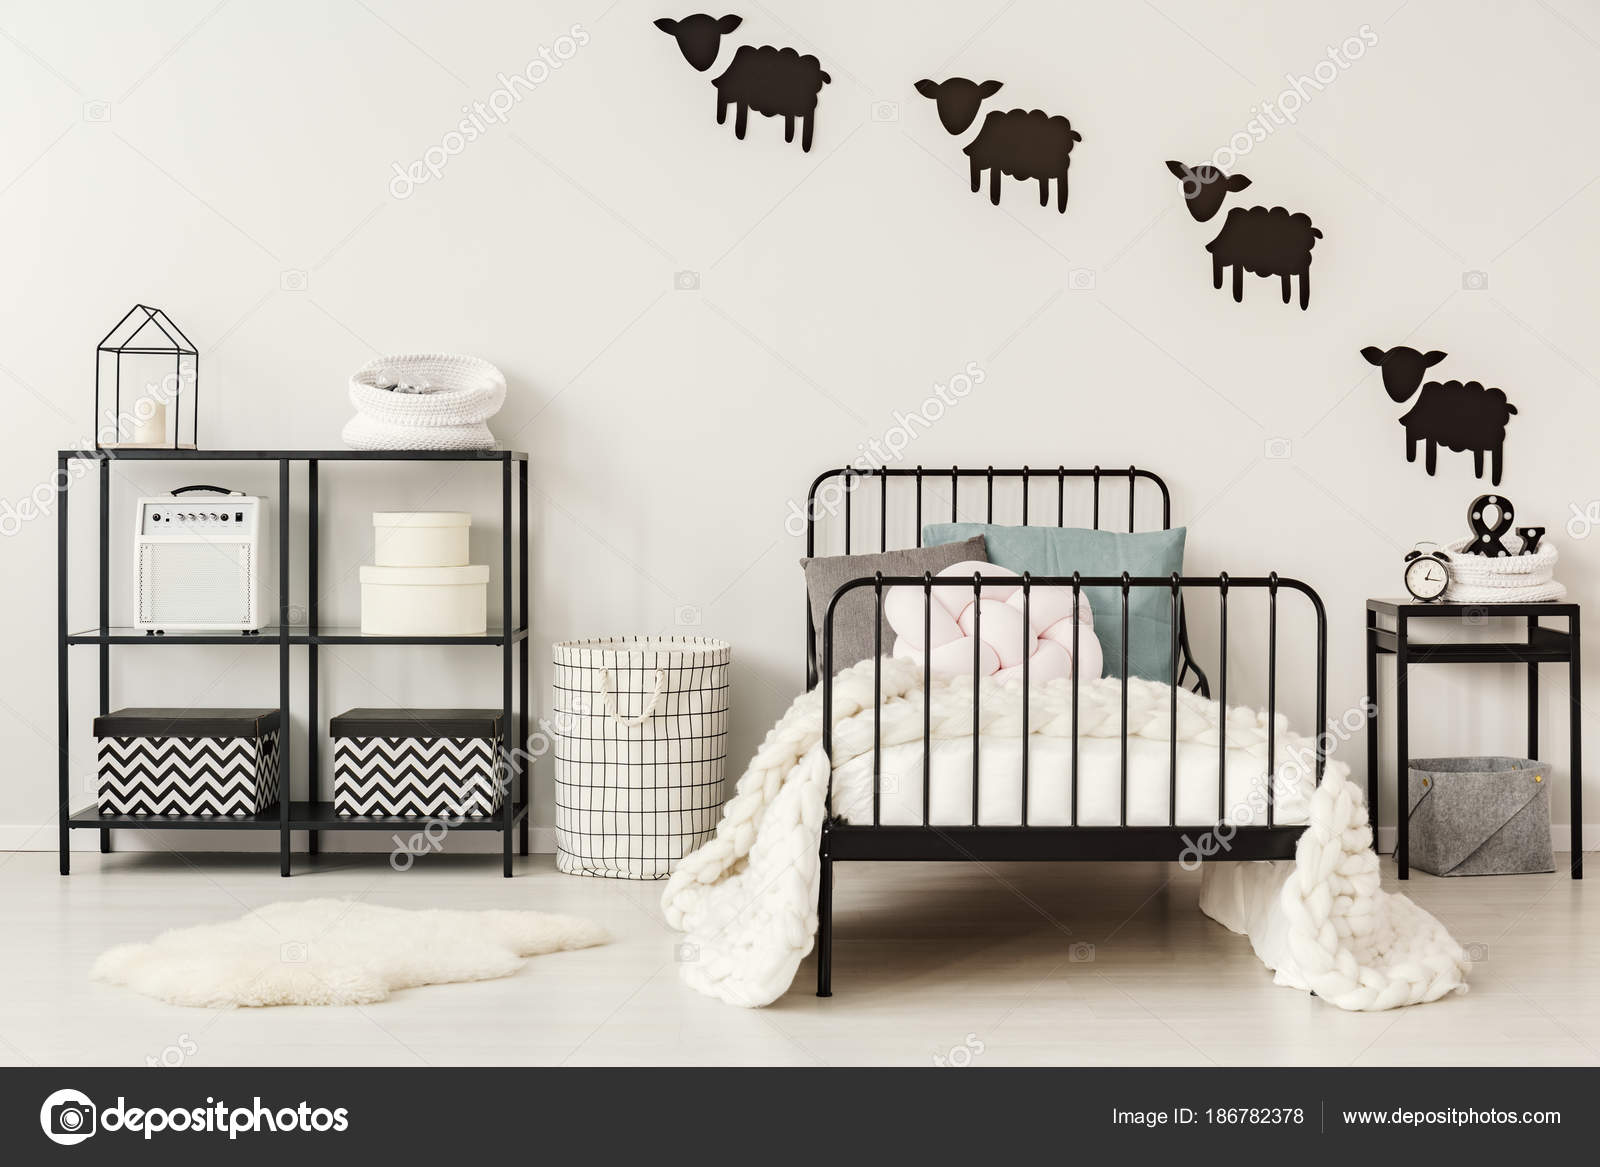 Interno camera da letto bianco e nero — Foto Stock © photographee.eu ...